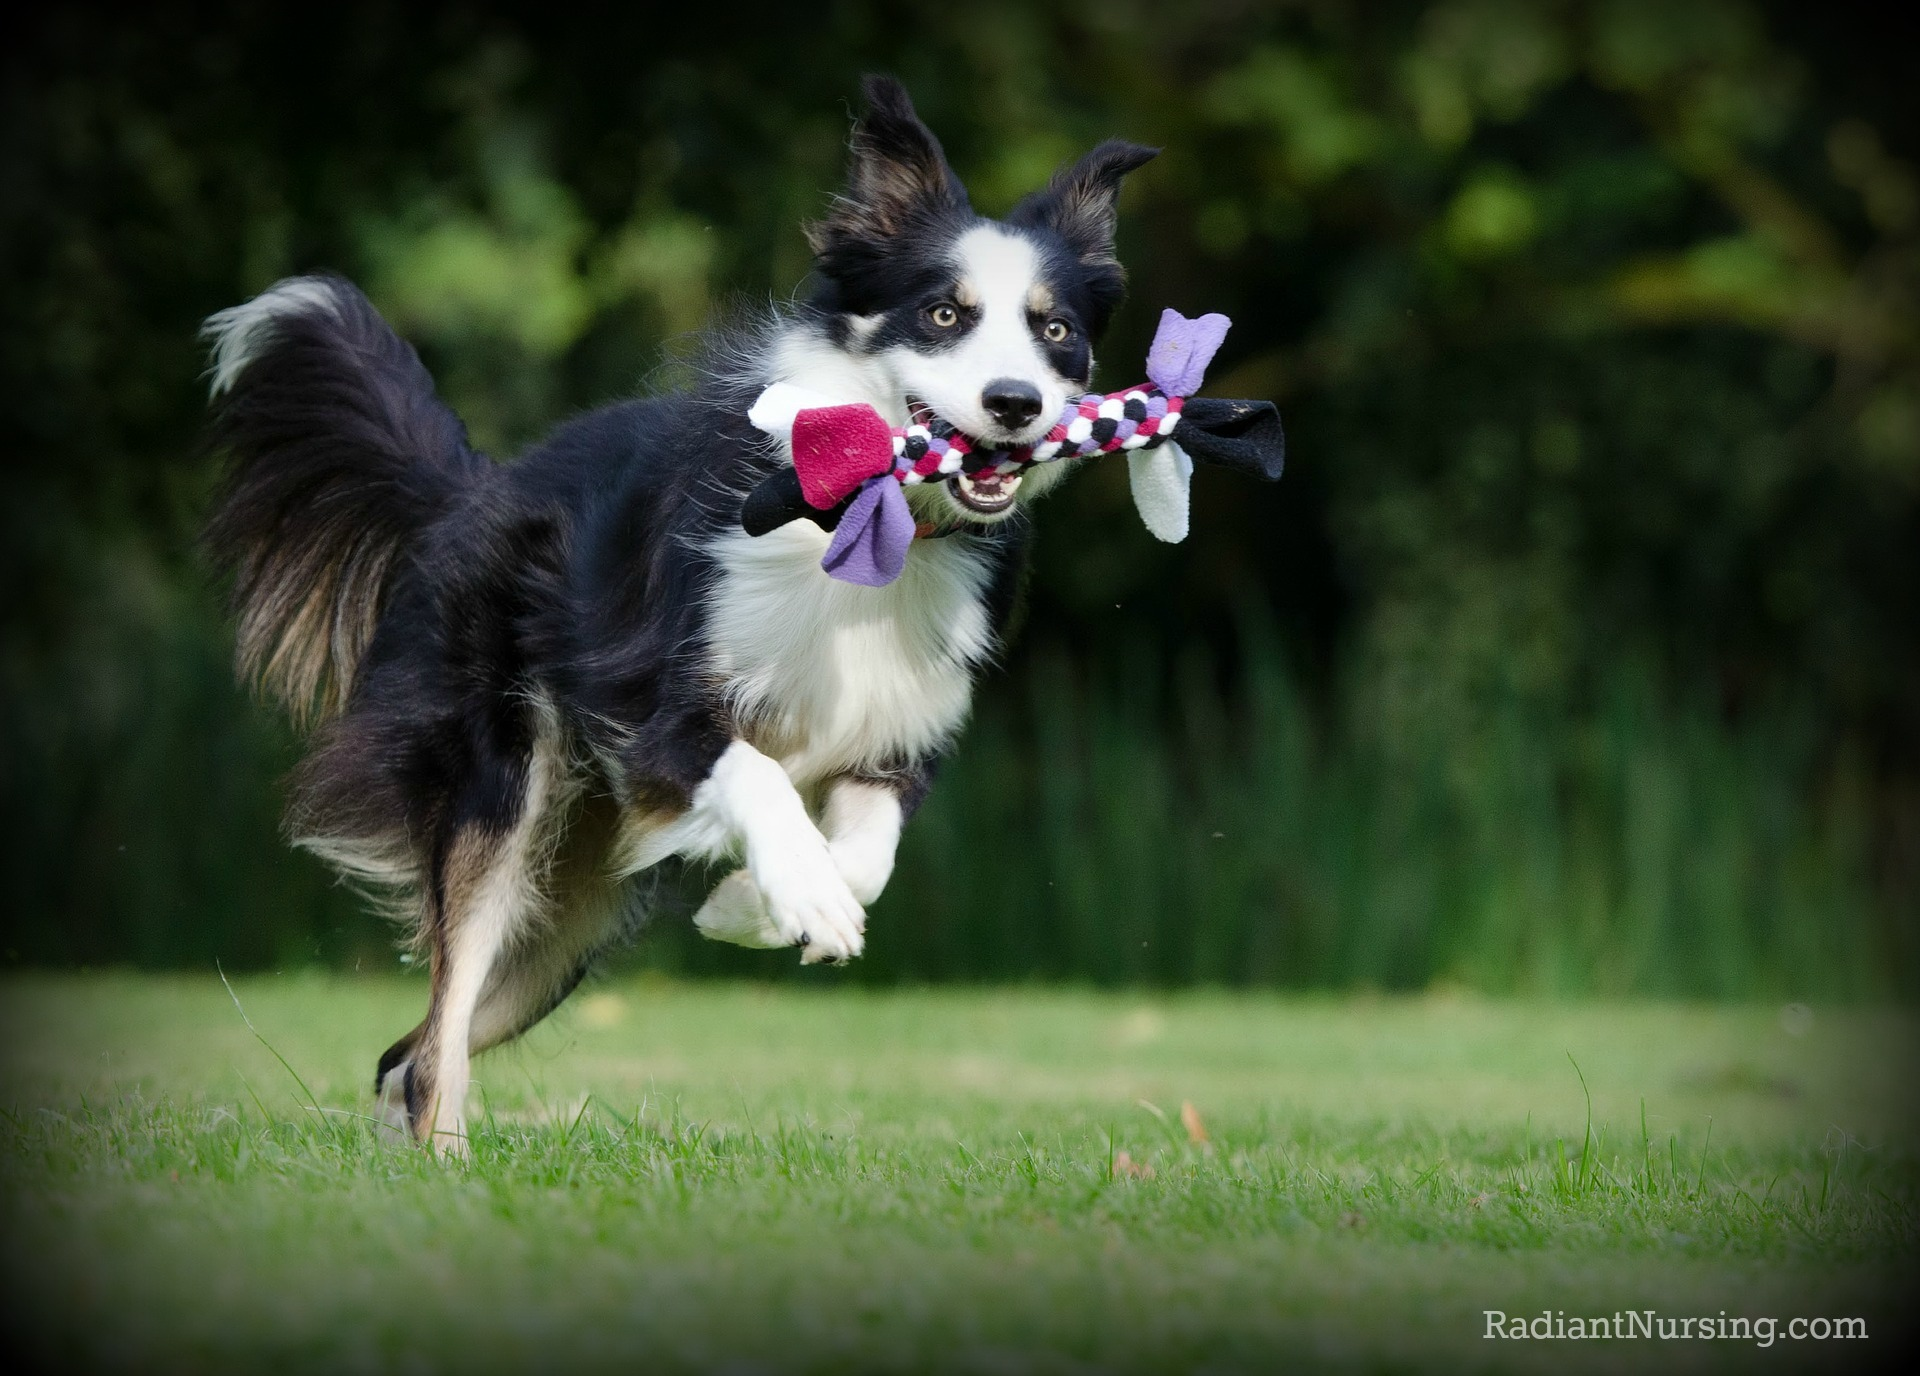 Play, enjoy, and create love with your pets.